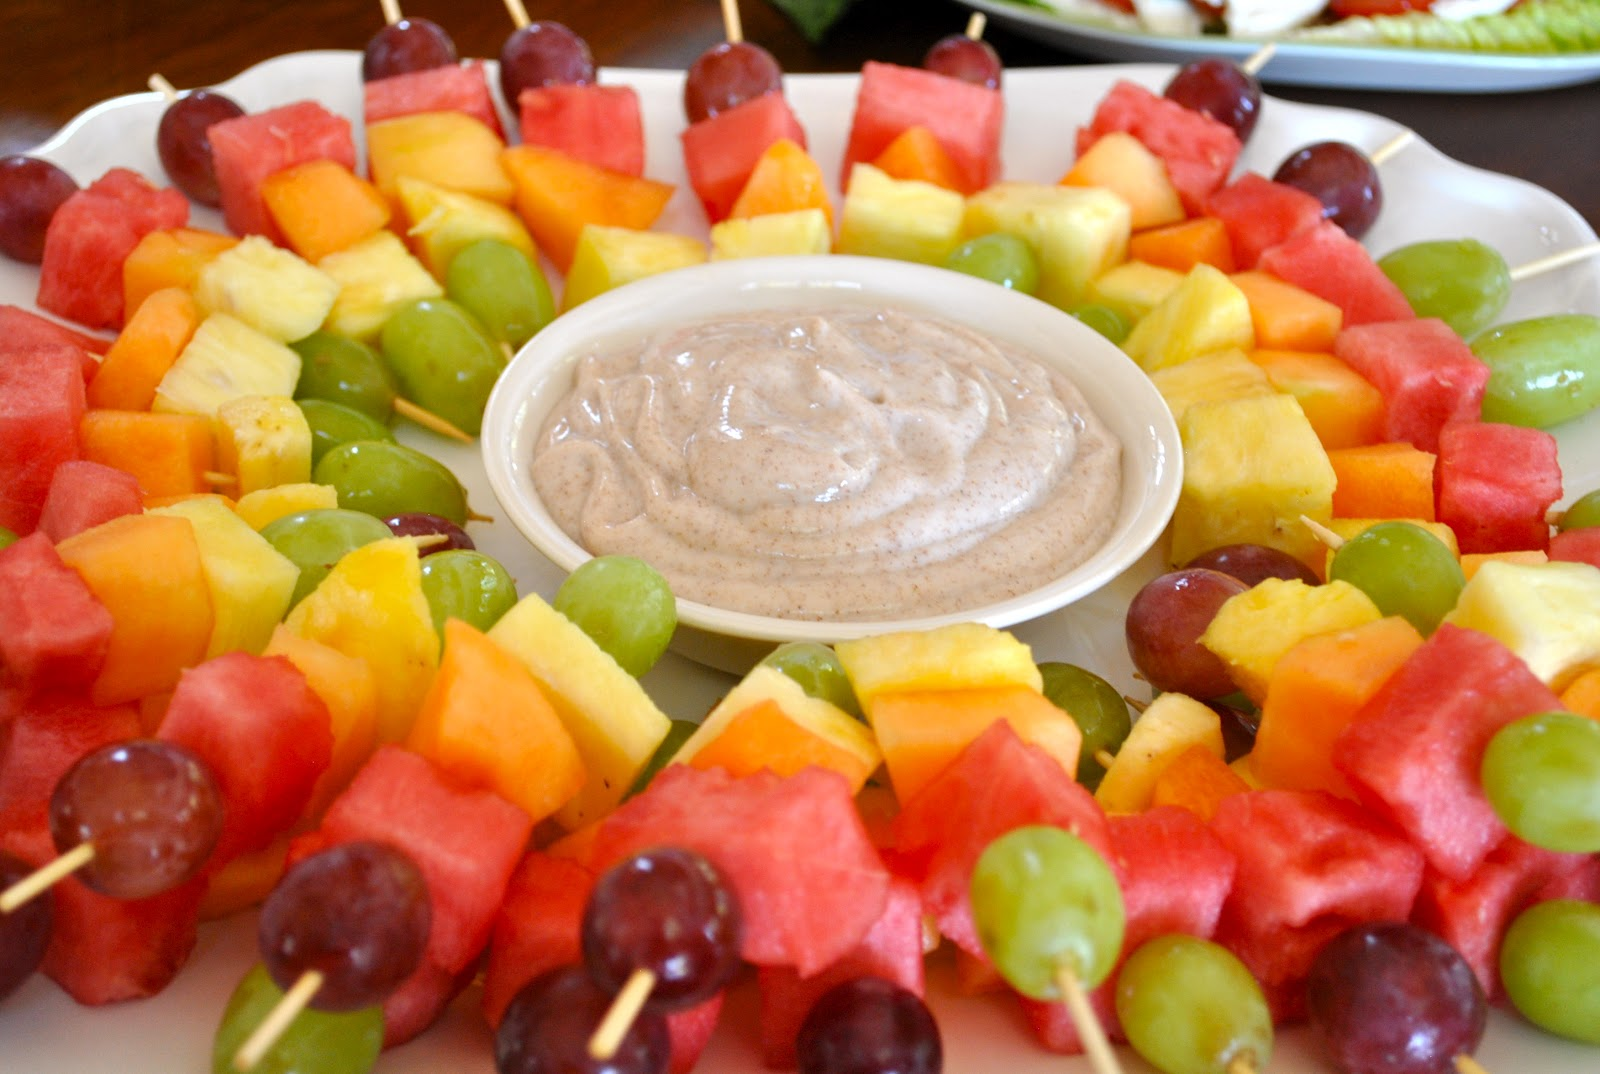 Rainbow Fruit Skewers With Yogurt Fruit Dip Recipes — Dishmaps